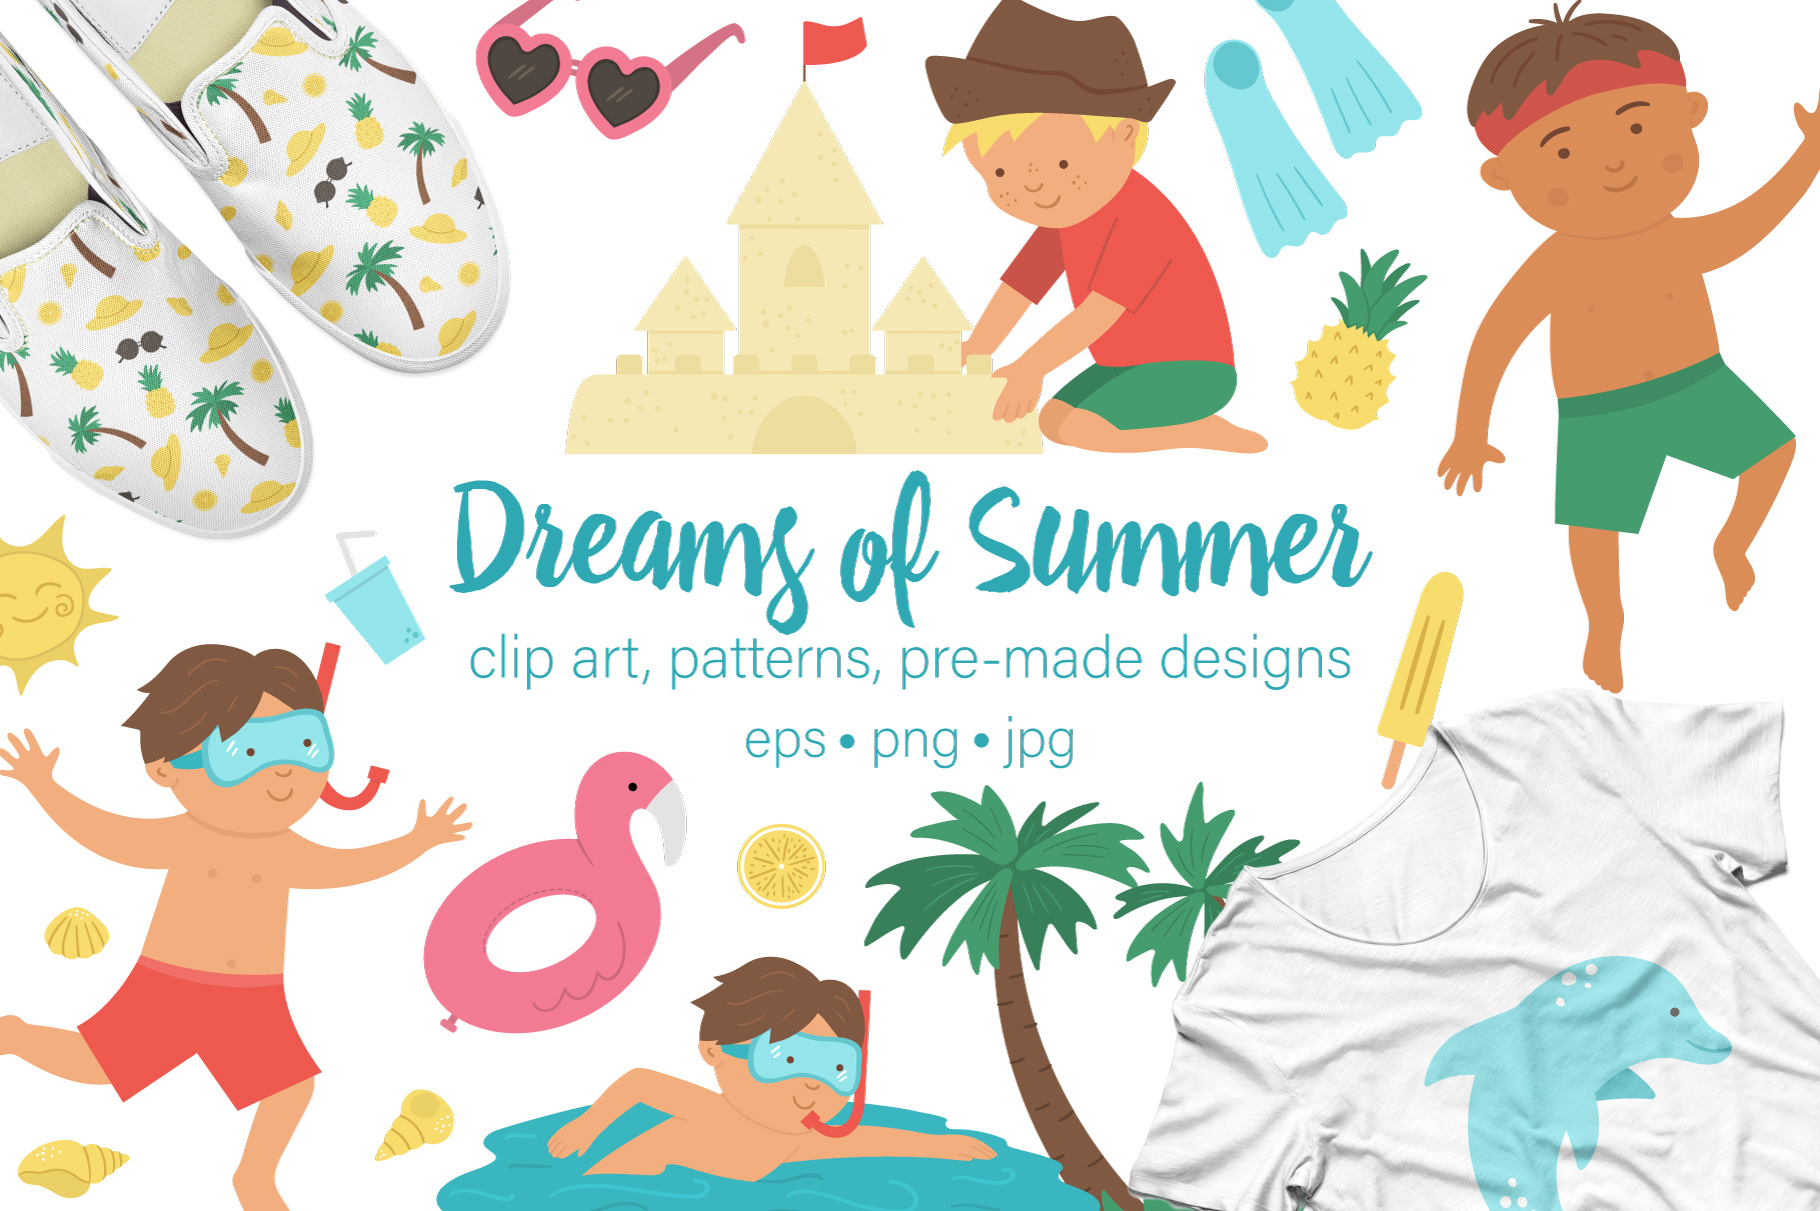 Download Free Dreams Of Summer Graphic By Lexiclaus Creative Fabrica for Cricut Explore, Silhouette and other cutting machines.